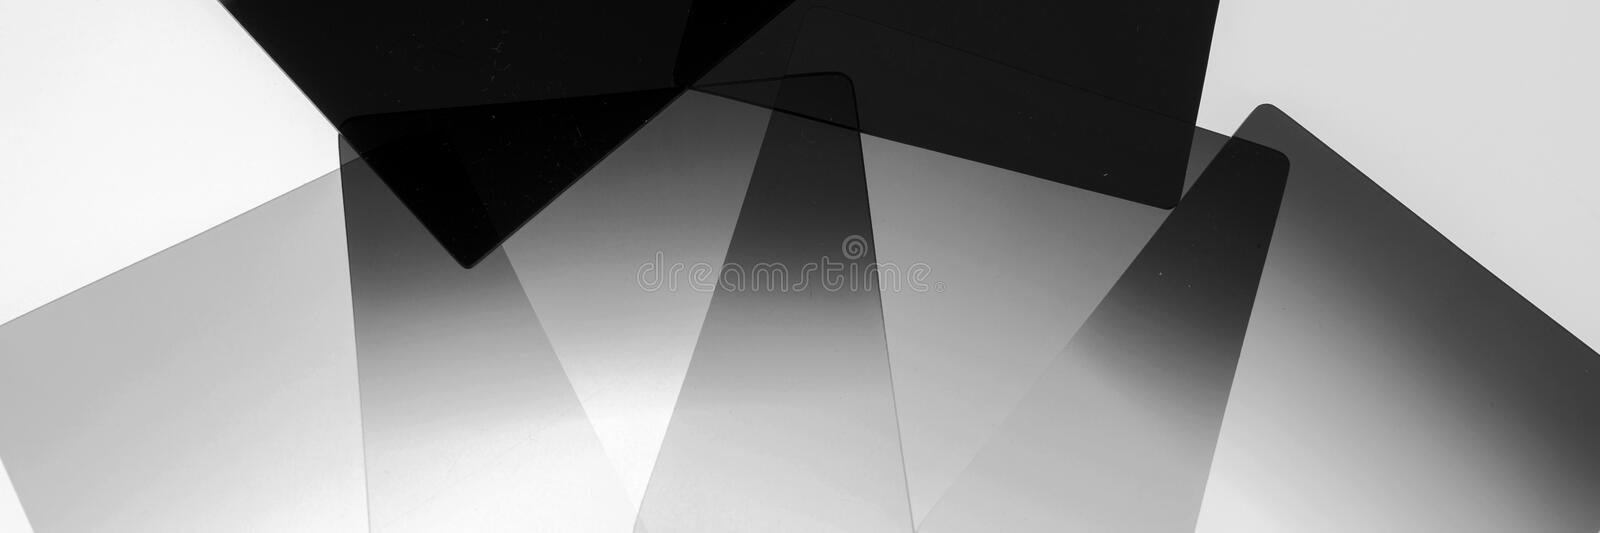 Neutral density and graduated neutral density filters used in camera for photography. Isolated on white royalty free stock photos